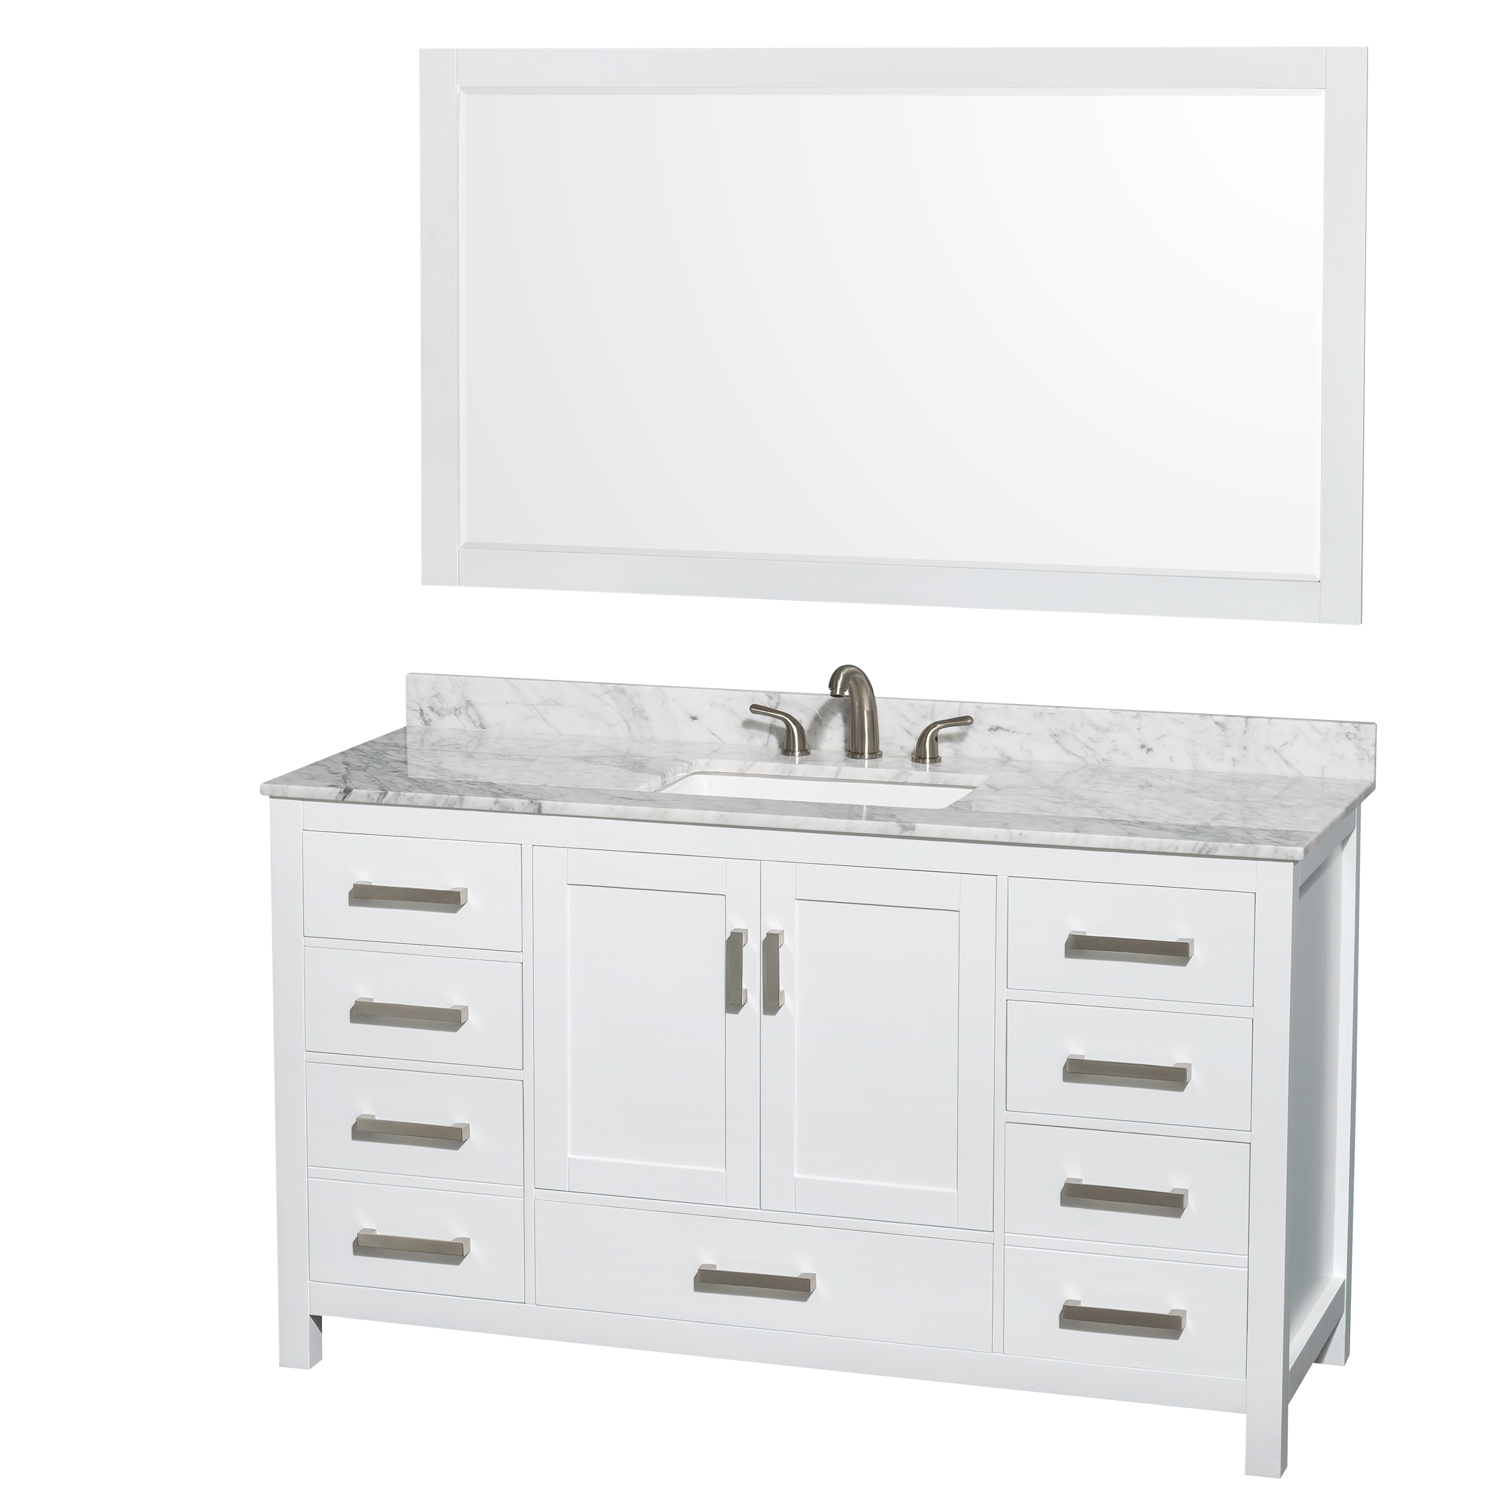 Sheffield 60 Single Bathroom Vanity Square Sink 3 Hole White Beautiful Bathroom Furniture For Every Home Wyndham Collection